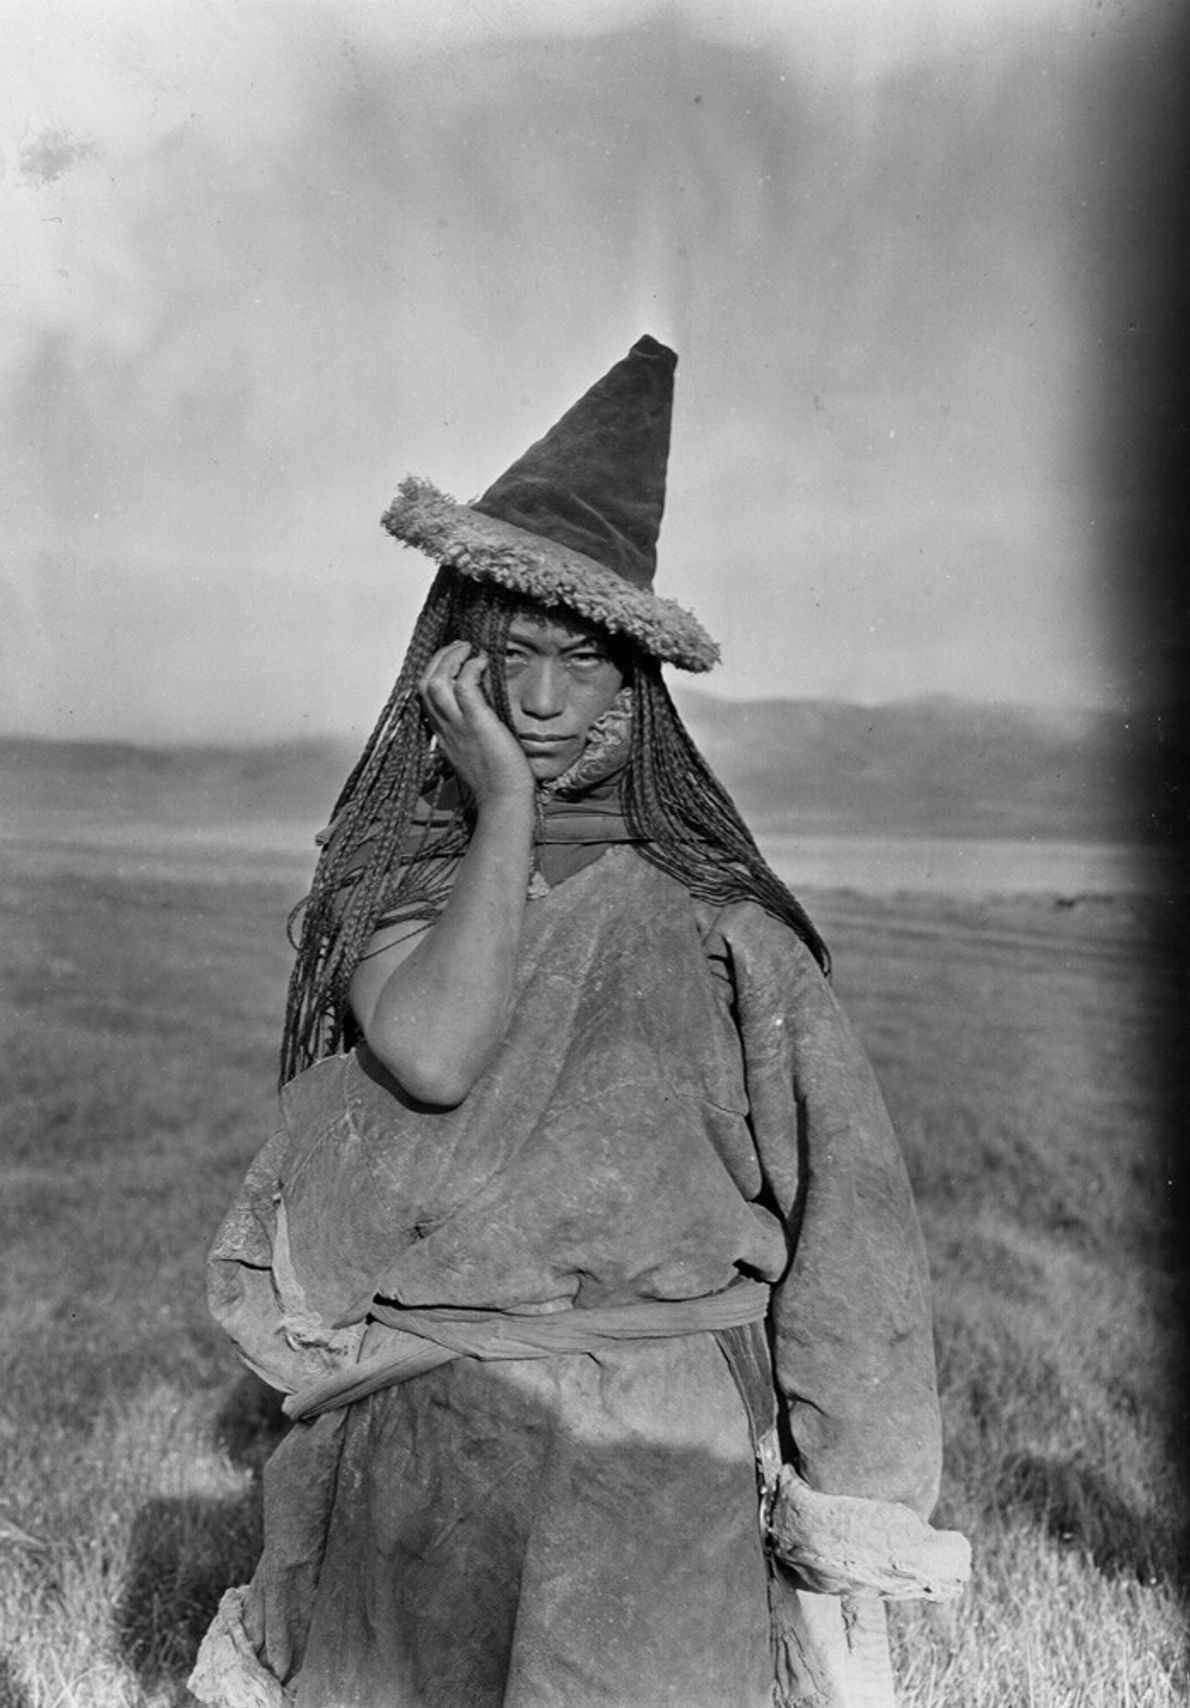 China, 1925: a Tibetan nomadic woman wearing a traditional pointed hat poses for the camera. Tibet ...